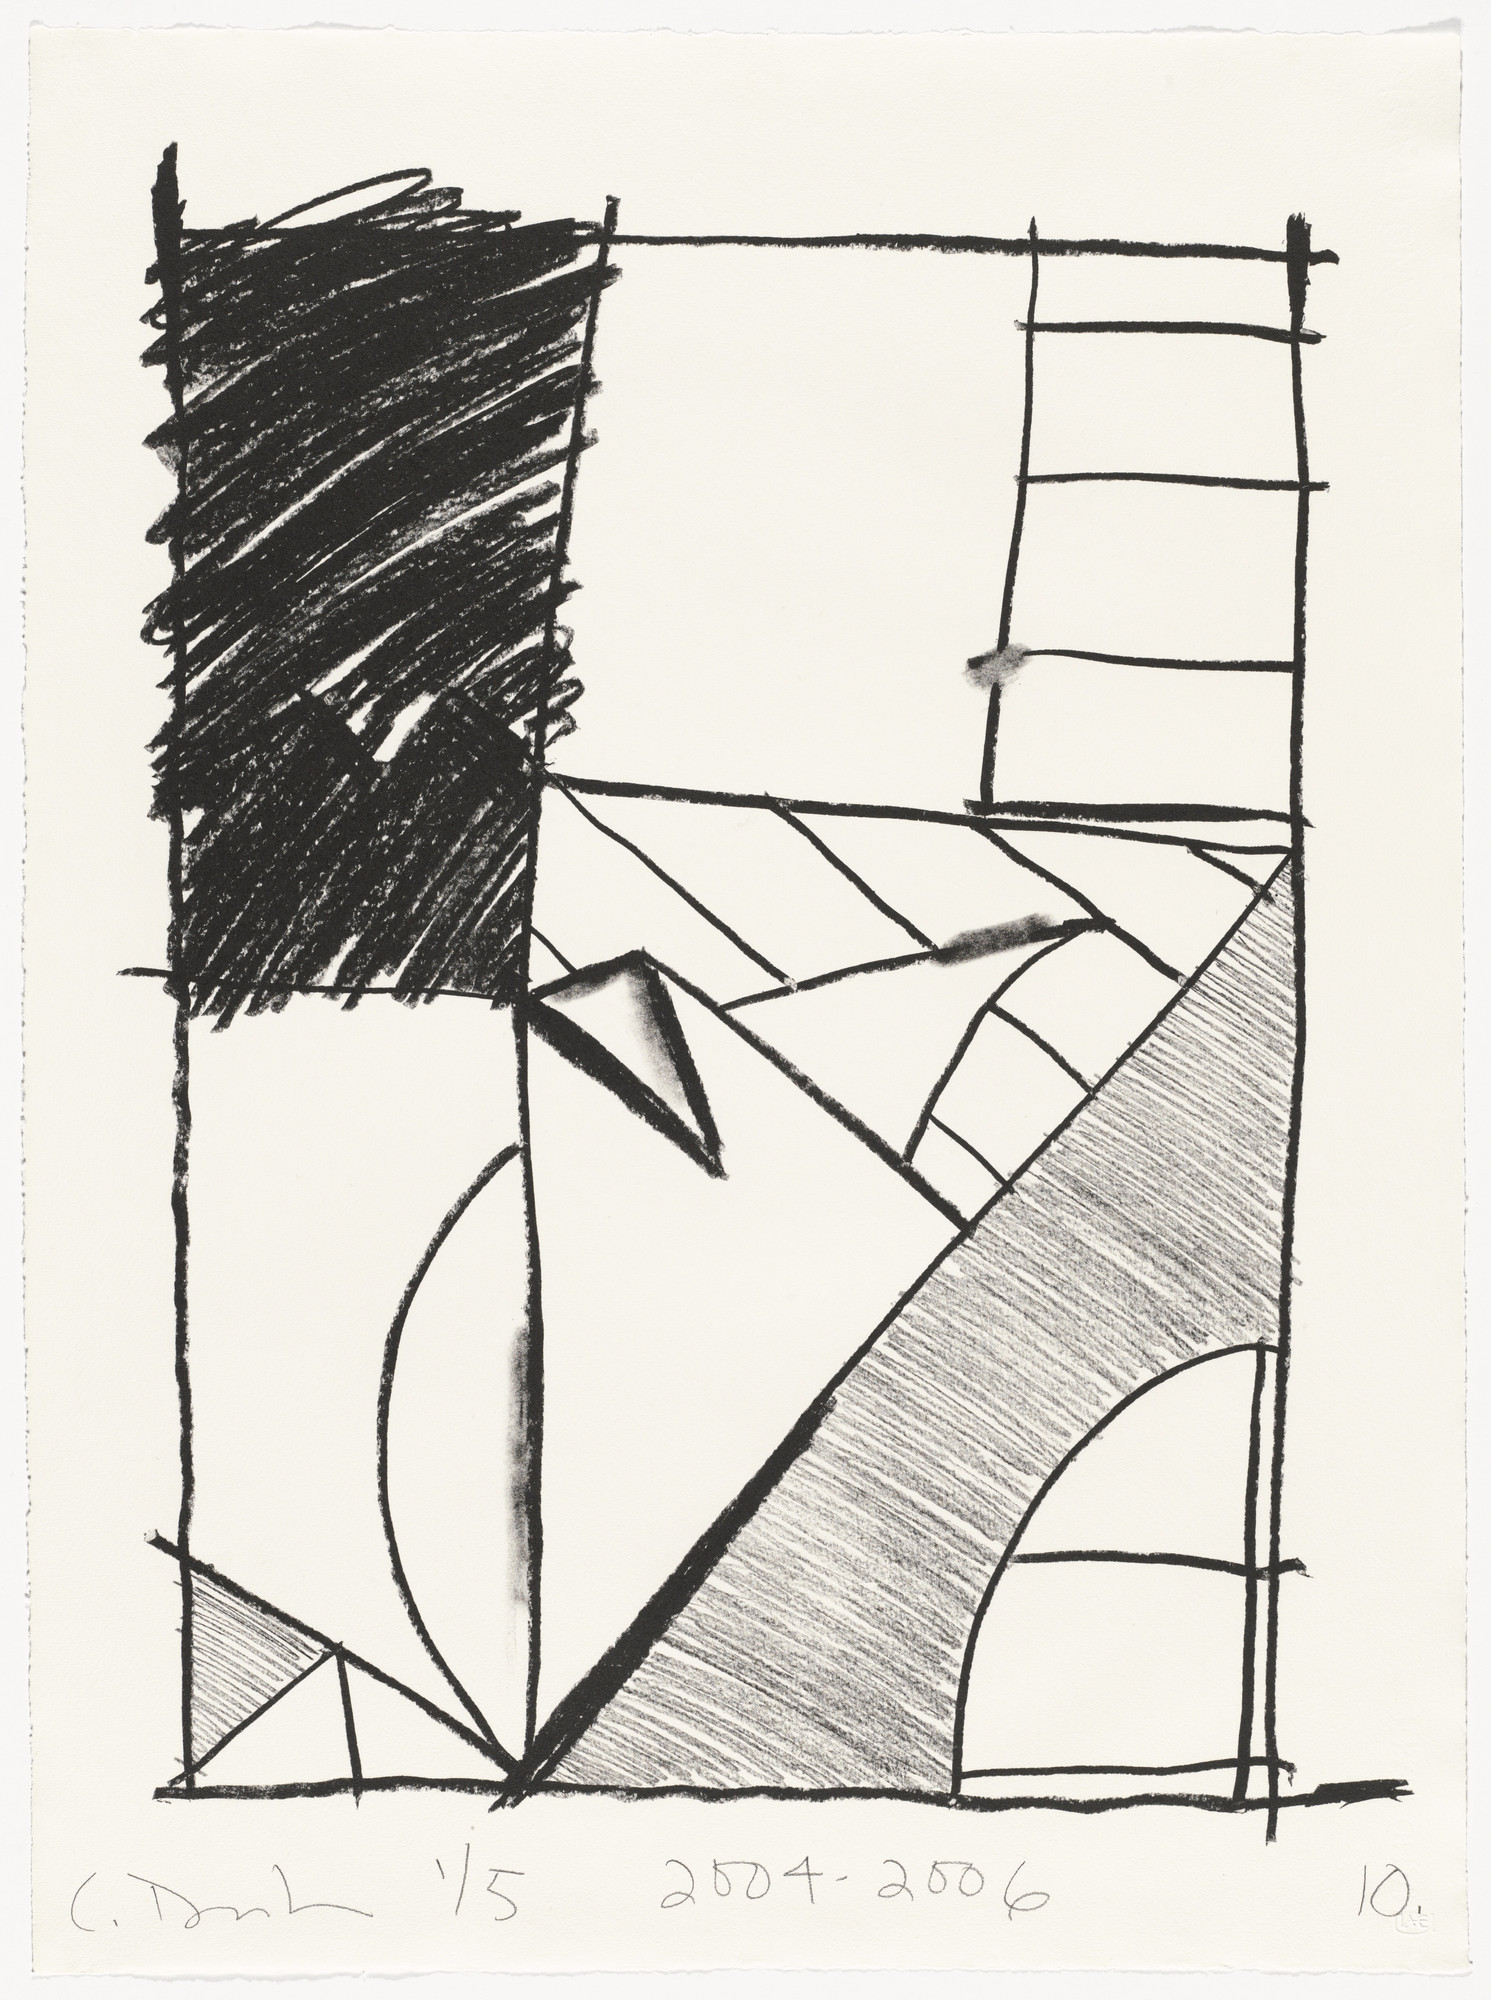 Carroll Dunham. Untitled (10) from Untitled. 2004-06